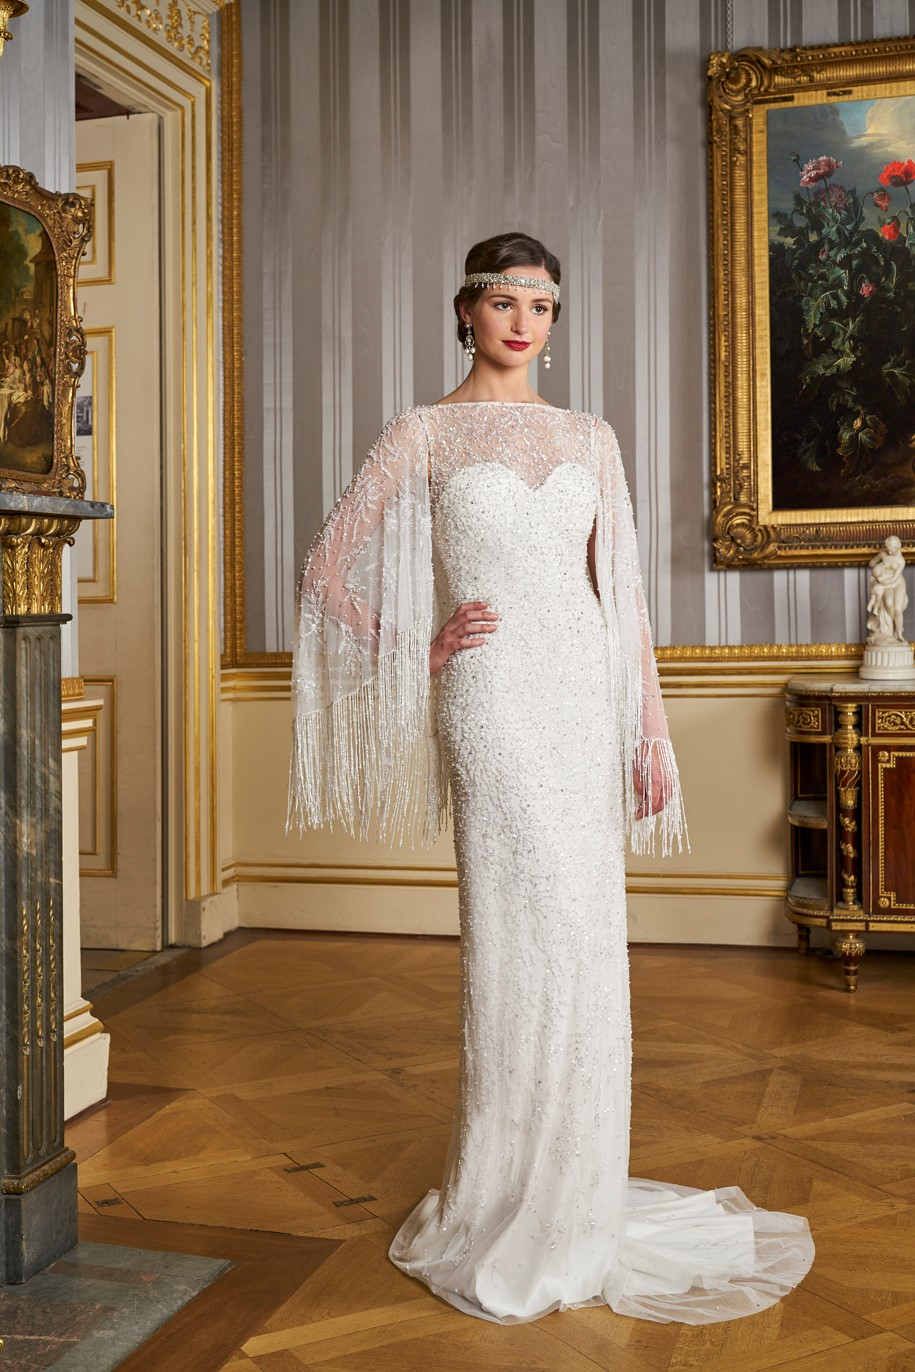 Vintage Inspired Wedding gowns - Eliza Jane Howell - Grand Voyage - Antibes